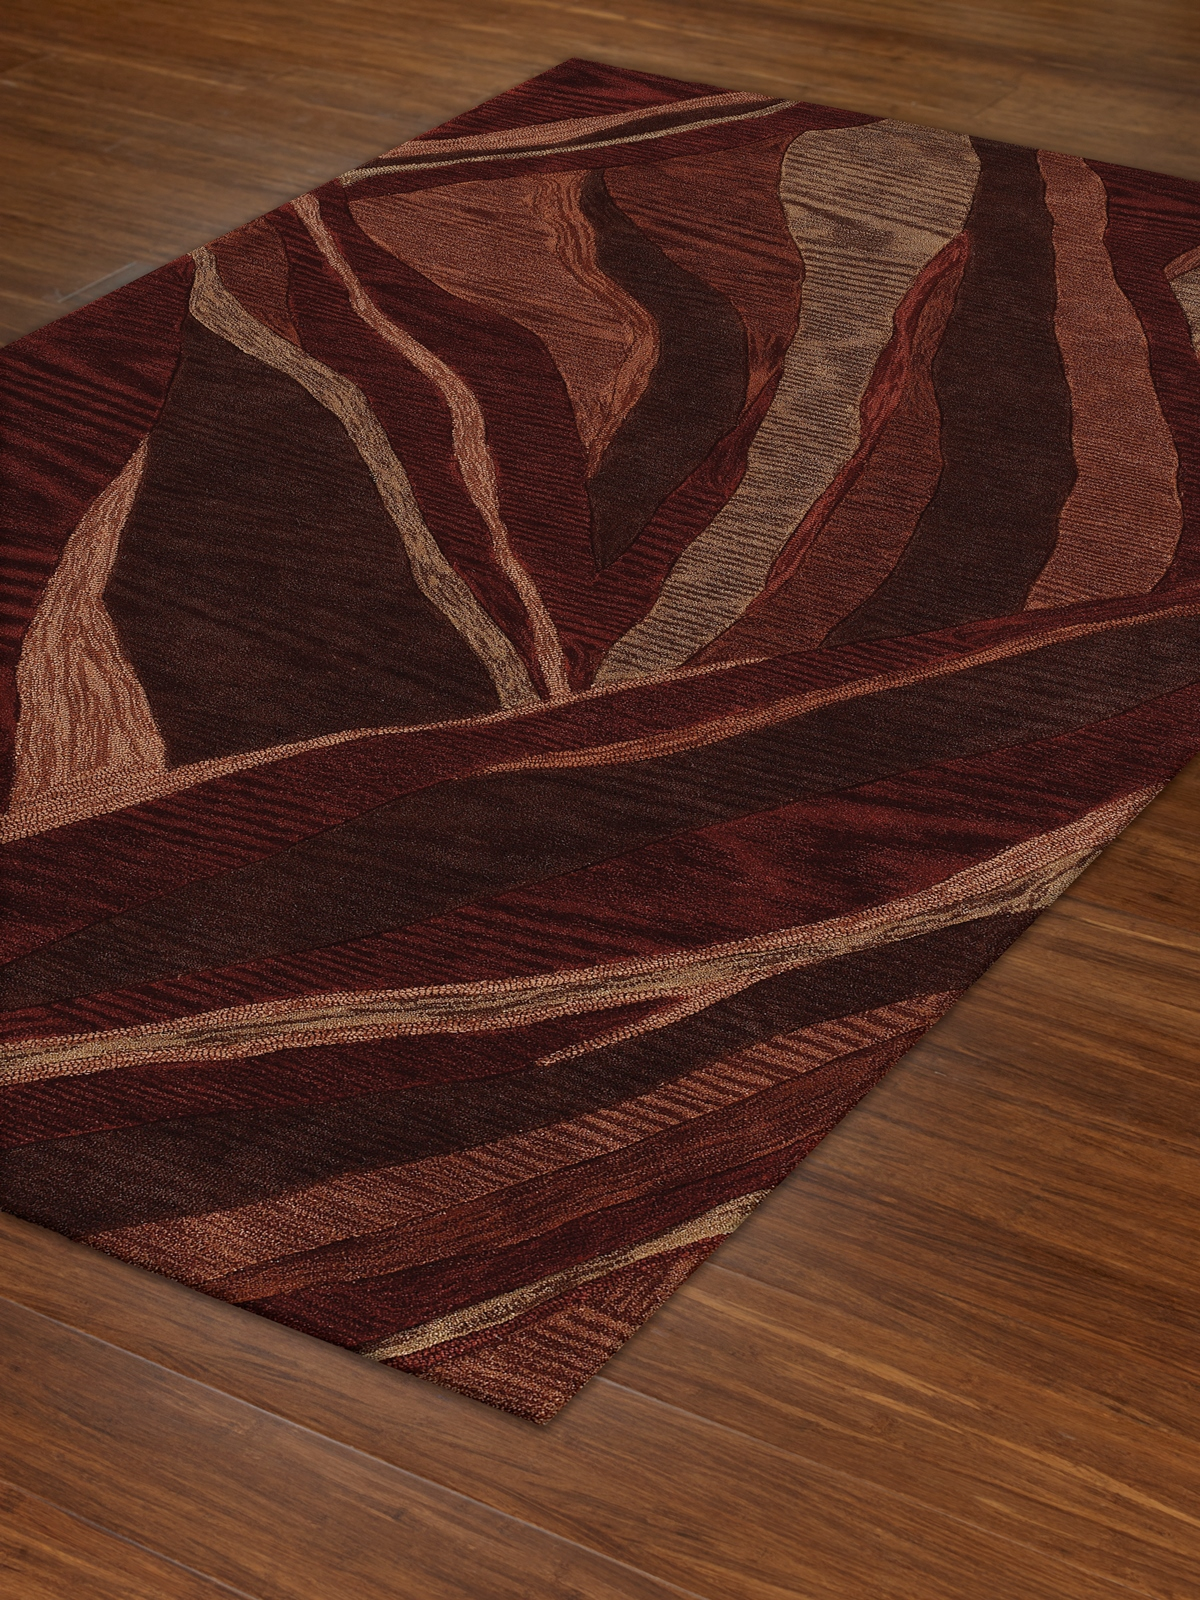 Dalyn Studio Sd16 Canyon Area Rug Free Shipping